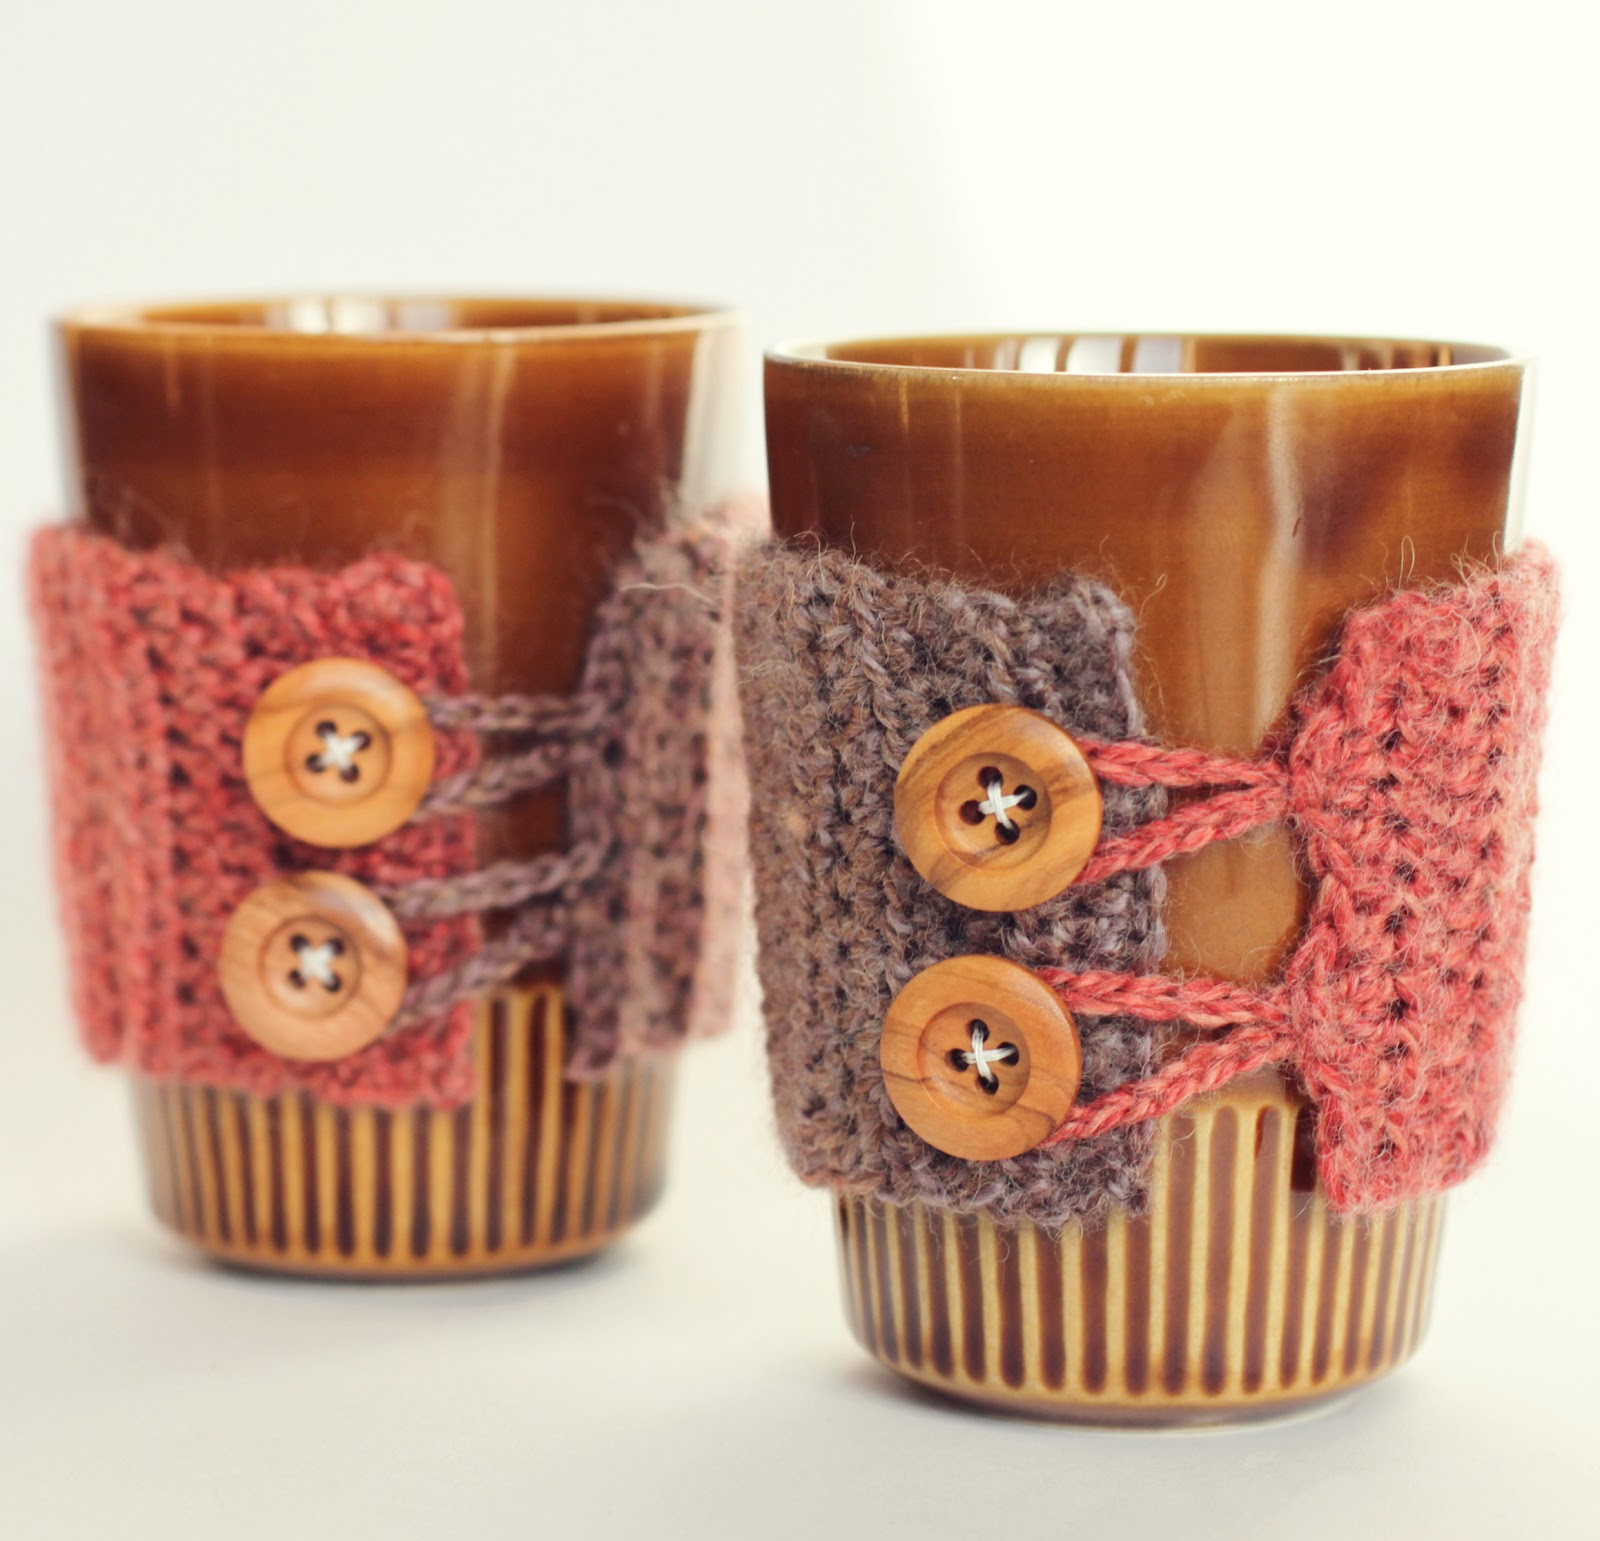 Crochet Coffee Cup Cozy Lovely L♥valizious Mug Cozy Tutorial Of Crochet Coffee Cup Cozy Awesome Crochet and Other Stuff Crochet A Mug Cozy Free Pattern